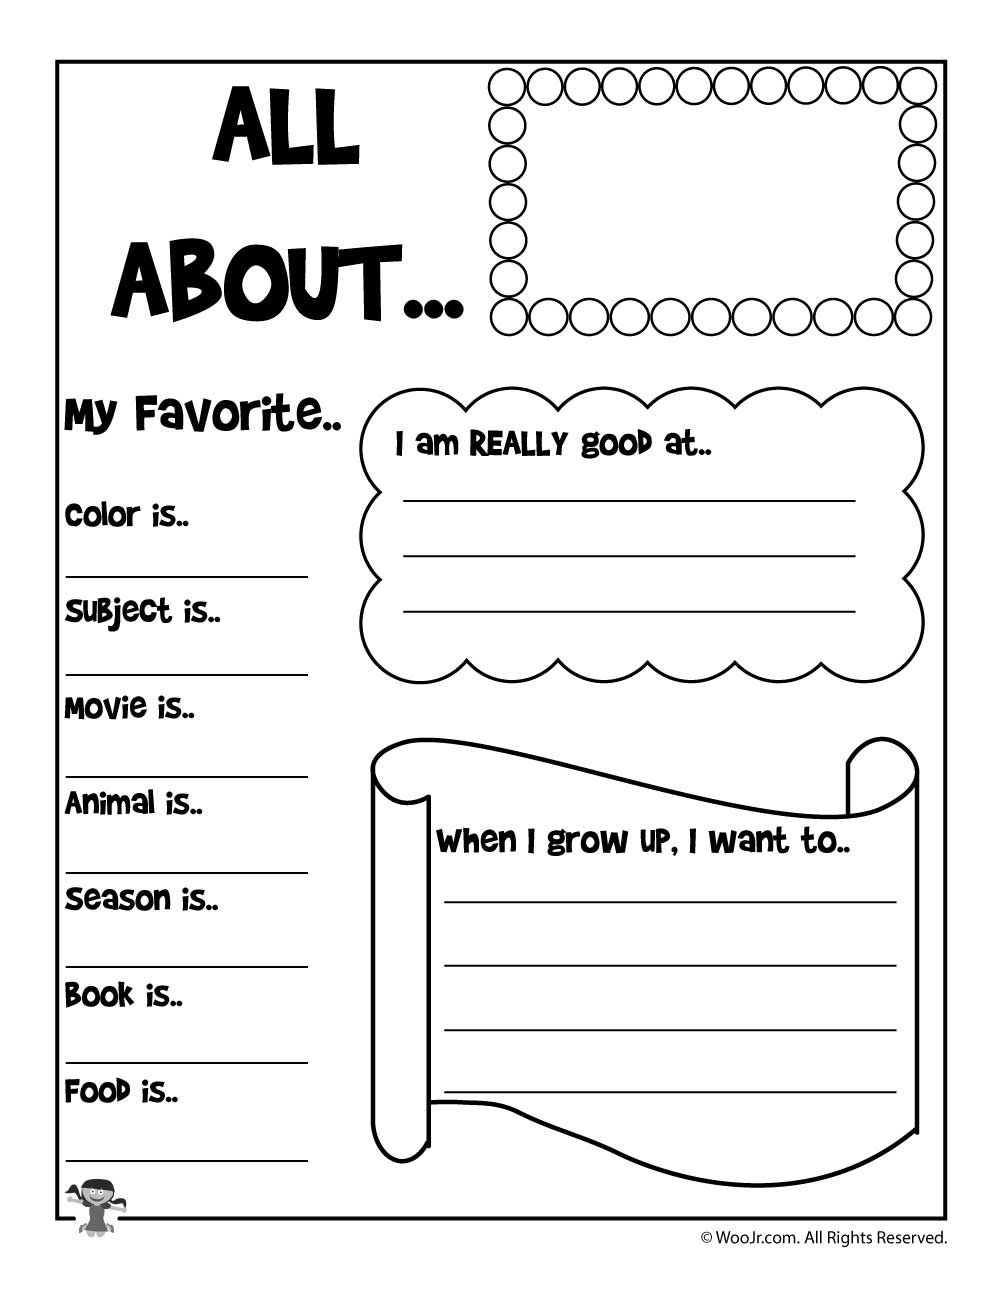 picture relating to Printable All About Me titled Printable More than Me Worksheets Printables for Little ones All